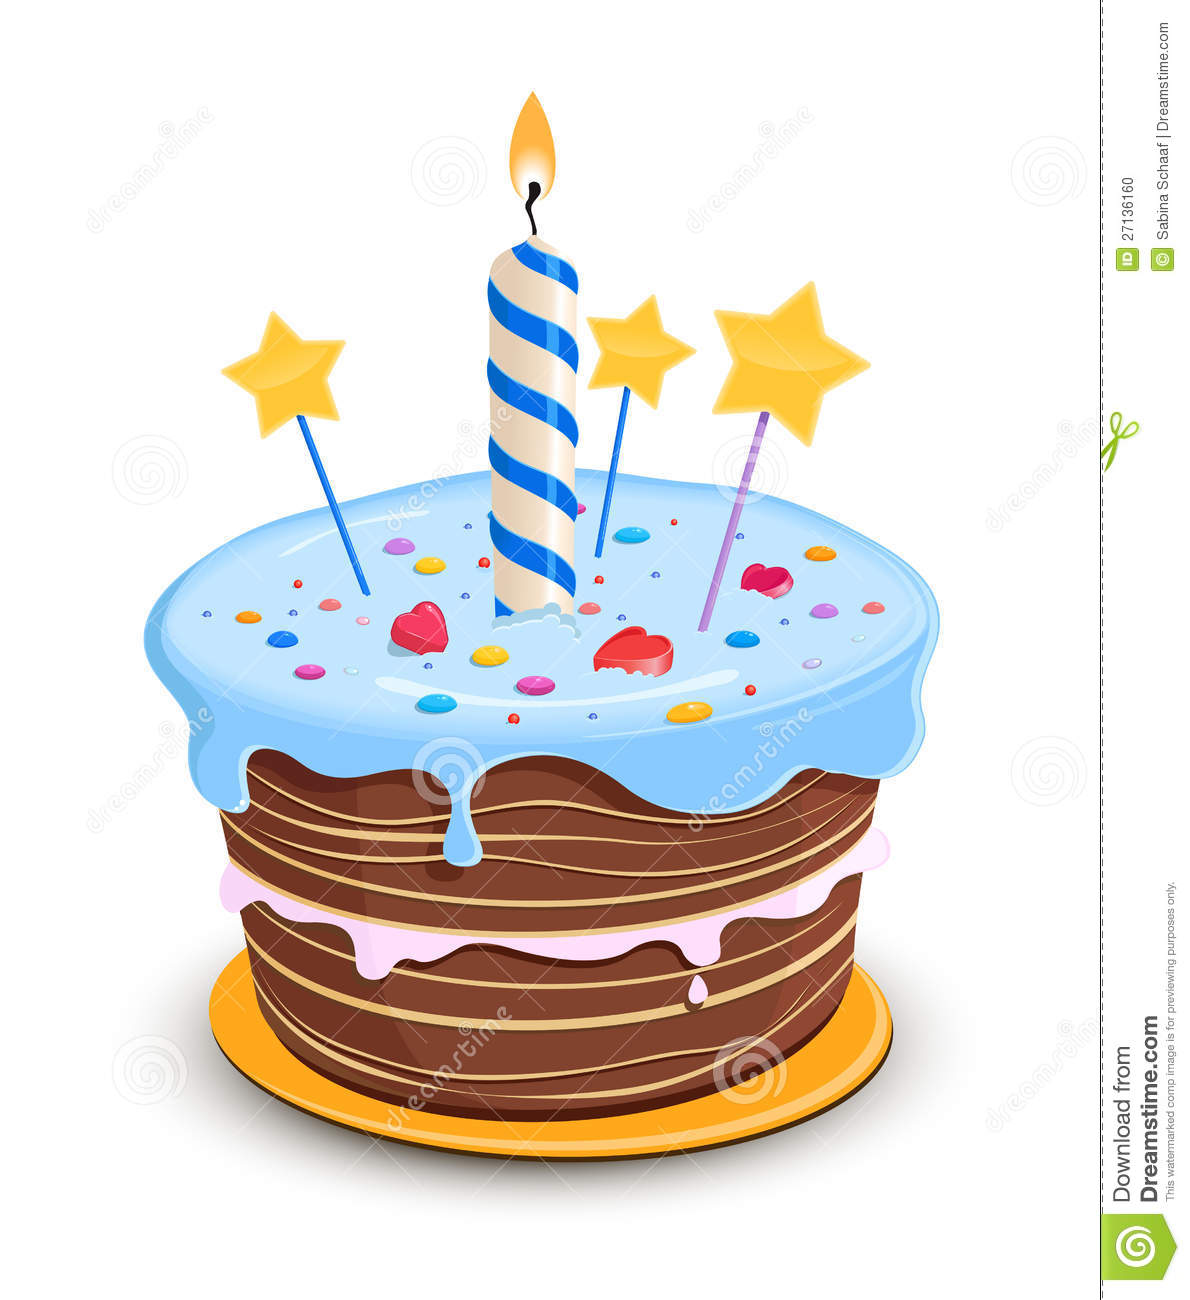 Birthday cake stock vector. Illustration of star ...